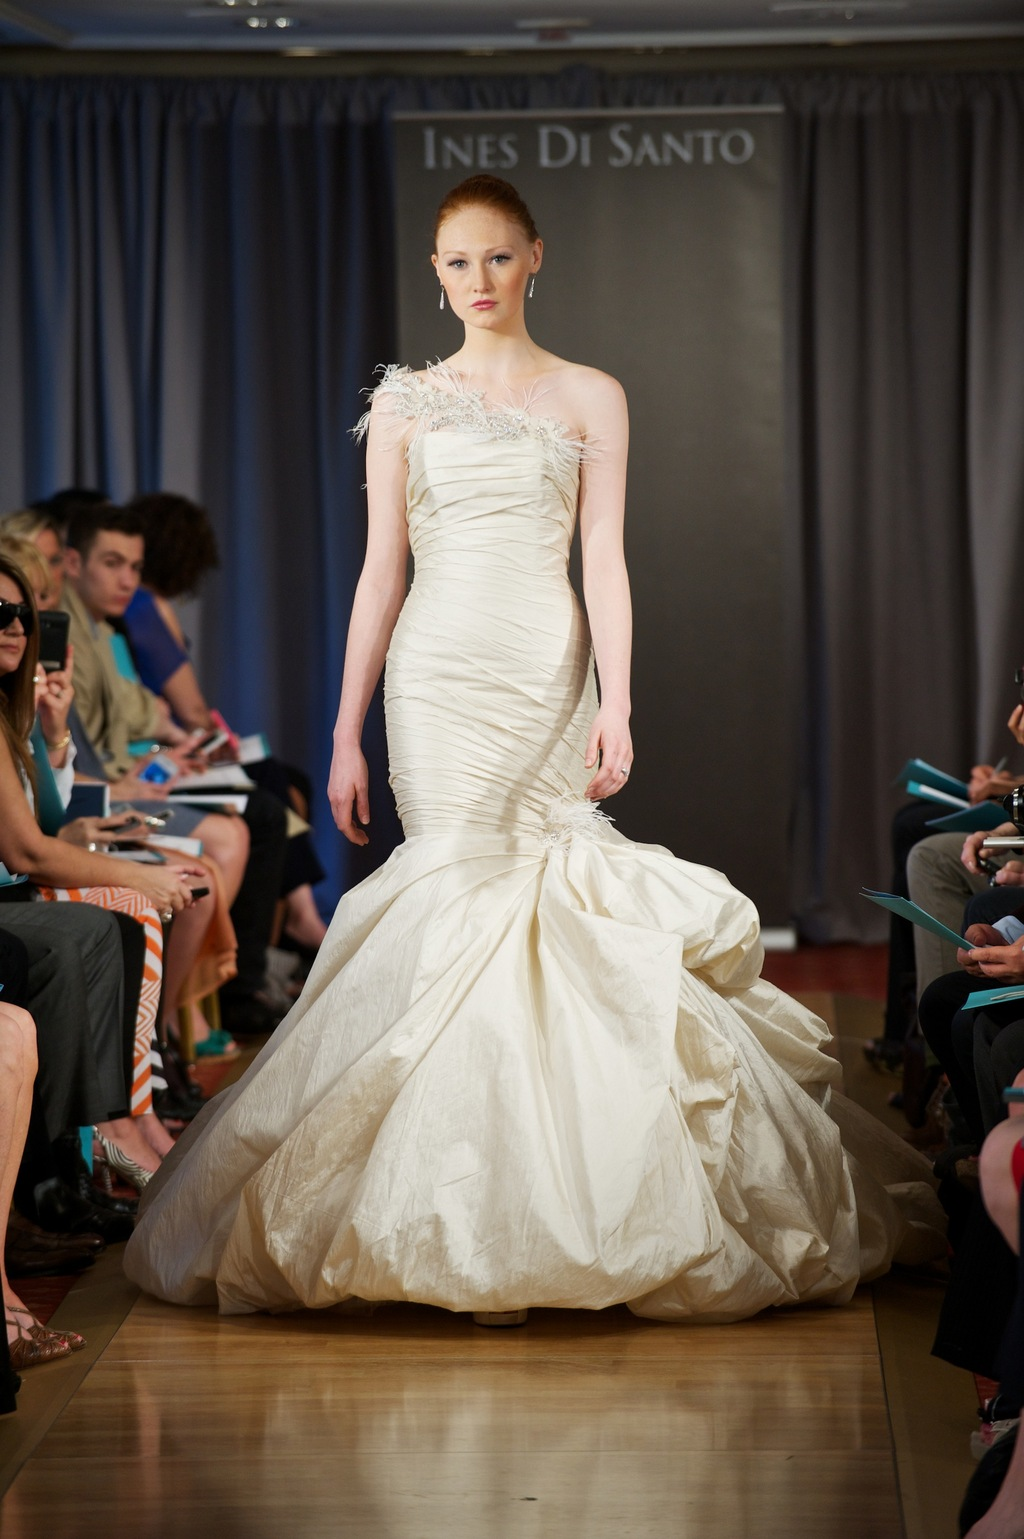 Wedding-dress-spring-2013-bridal-gowns-ines-di-santo-3.full